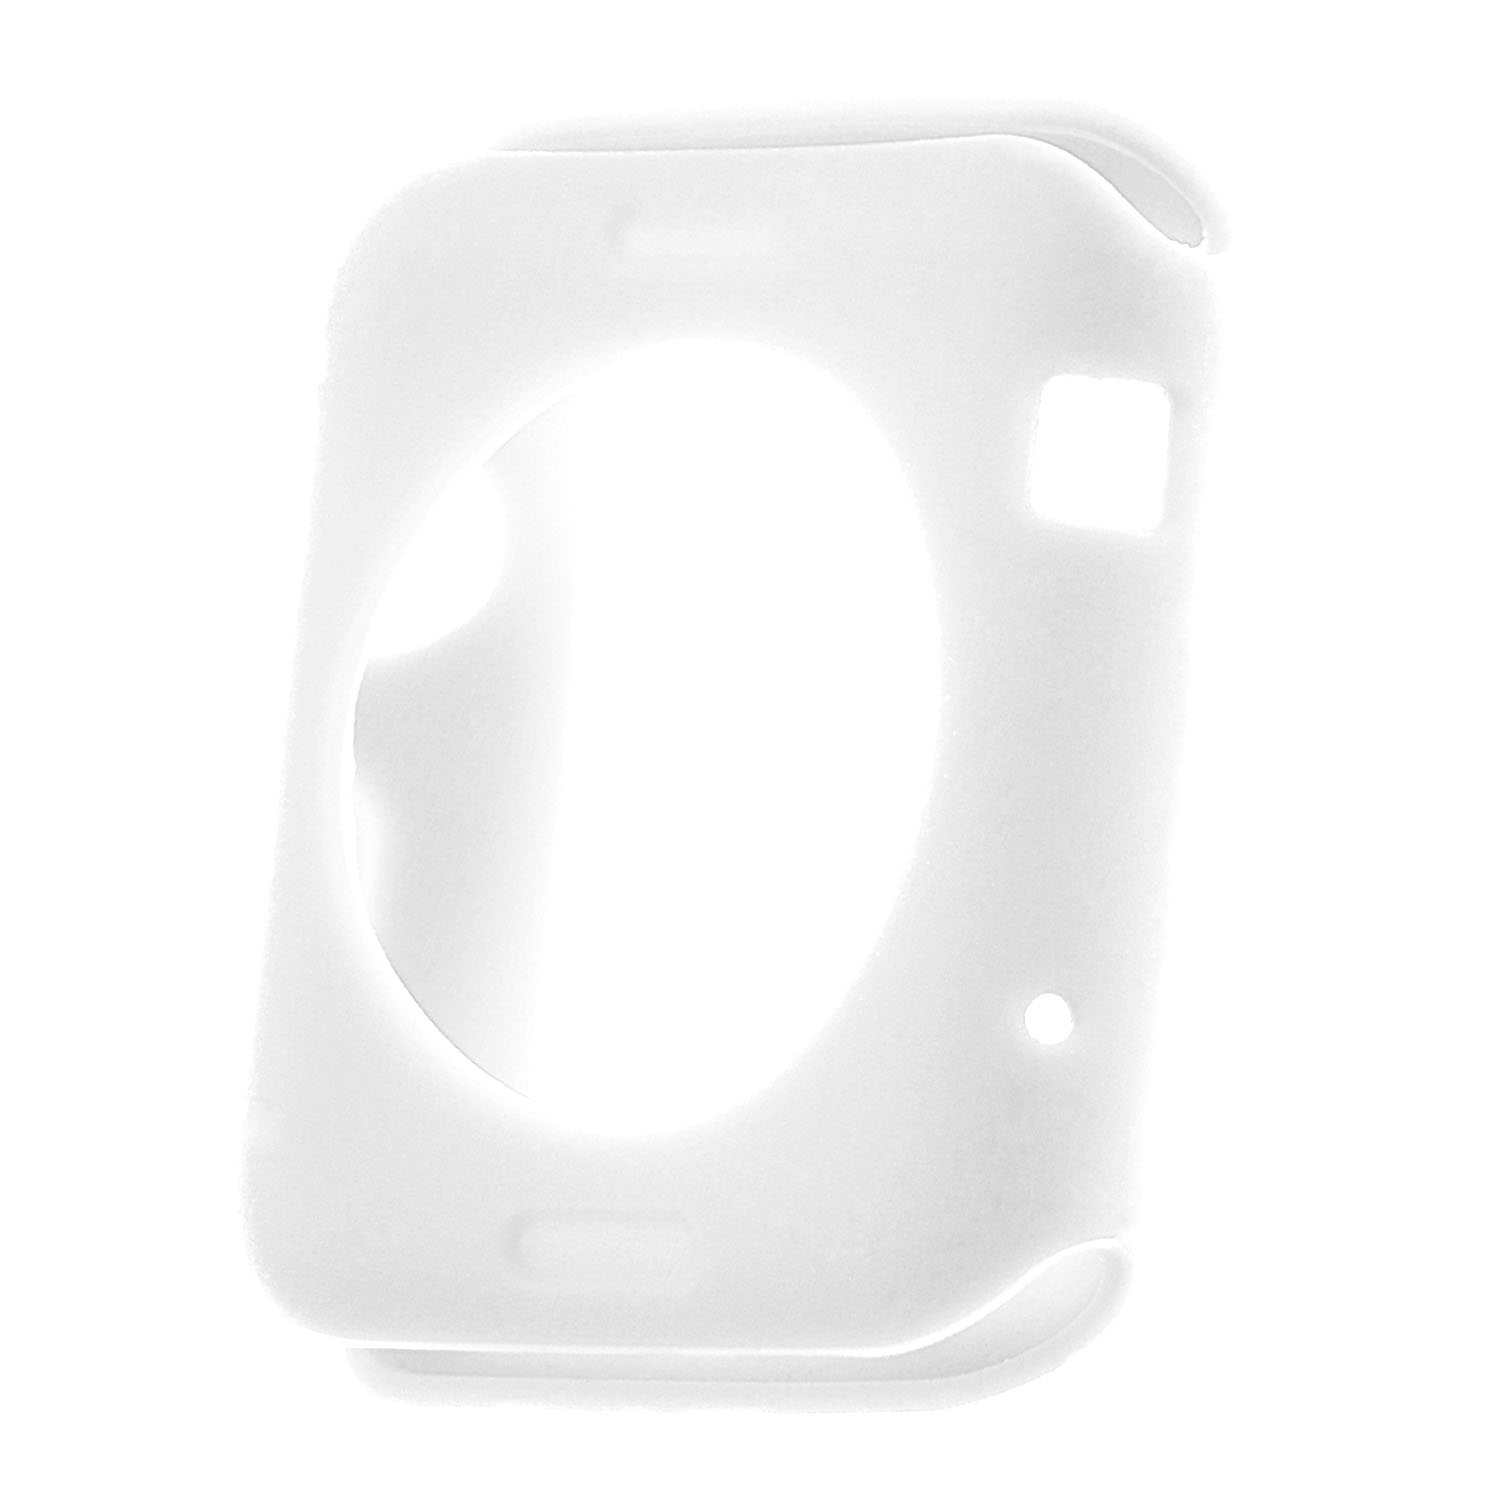 StrapsCo Silicone Rubber Protective Case Cover for 38mm 42mm Apple Watch Series 1/2/3 - image 2 of 3